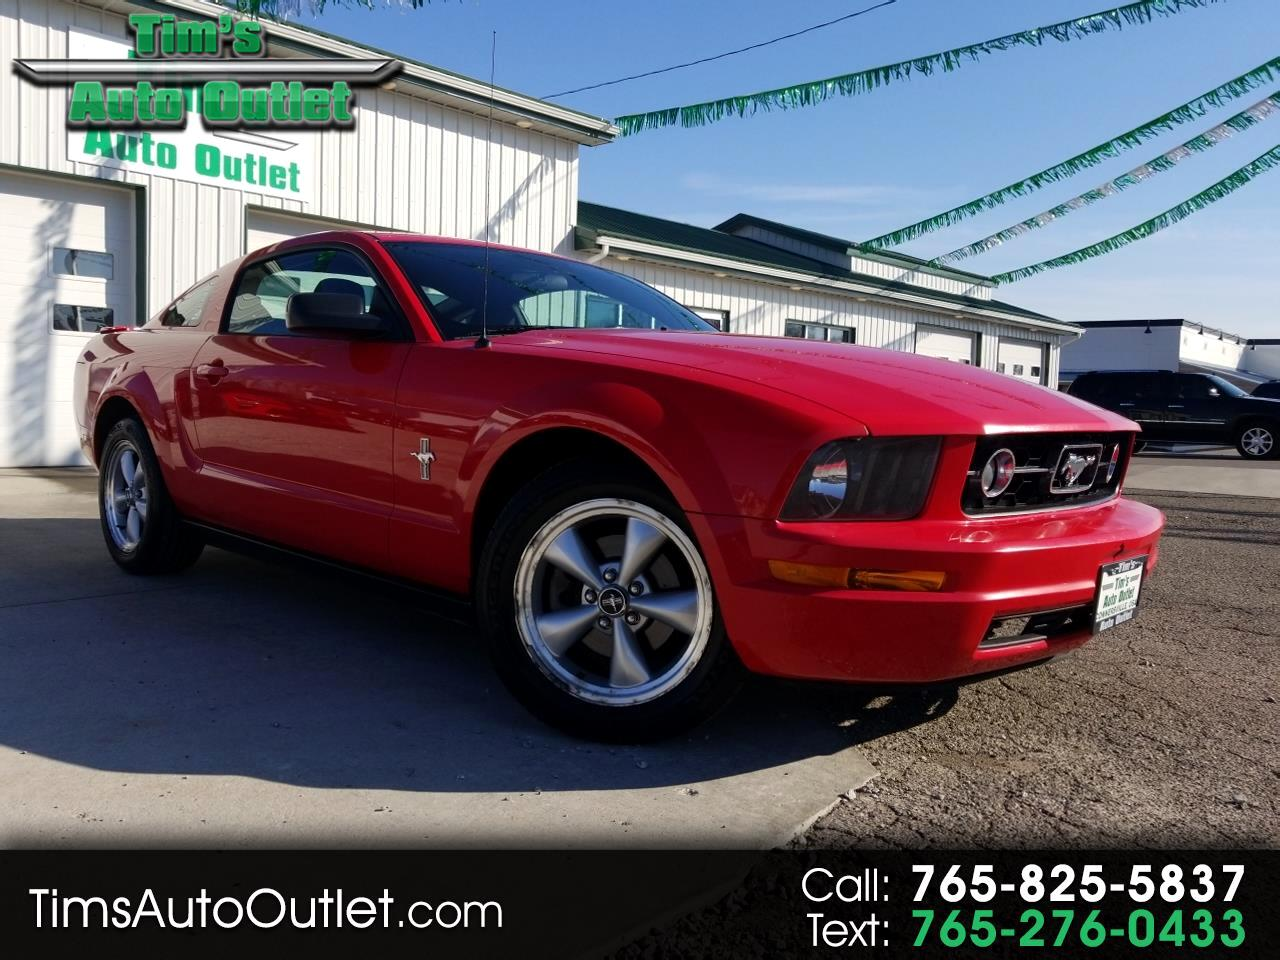 2008 Ford Mustang 2dr Cpe Premium